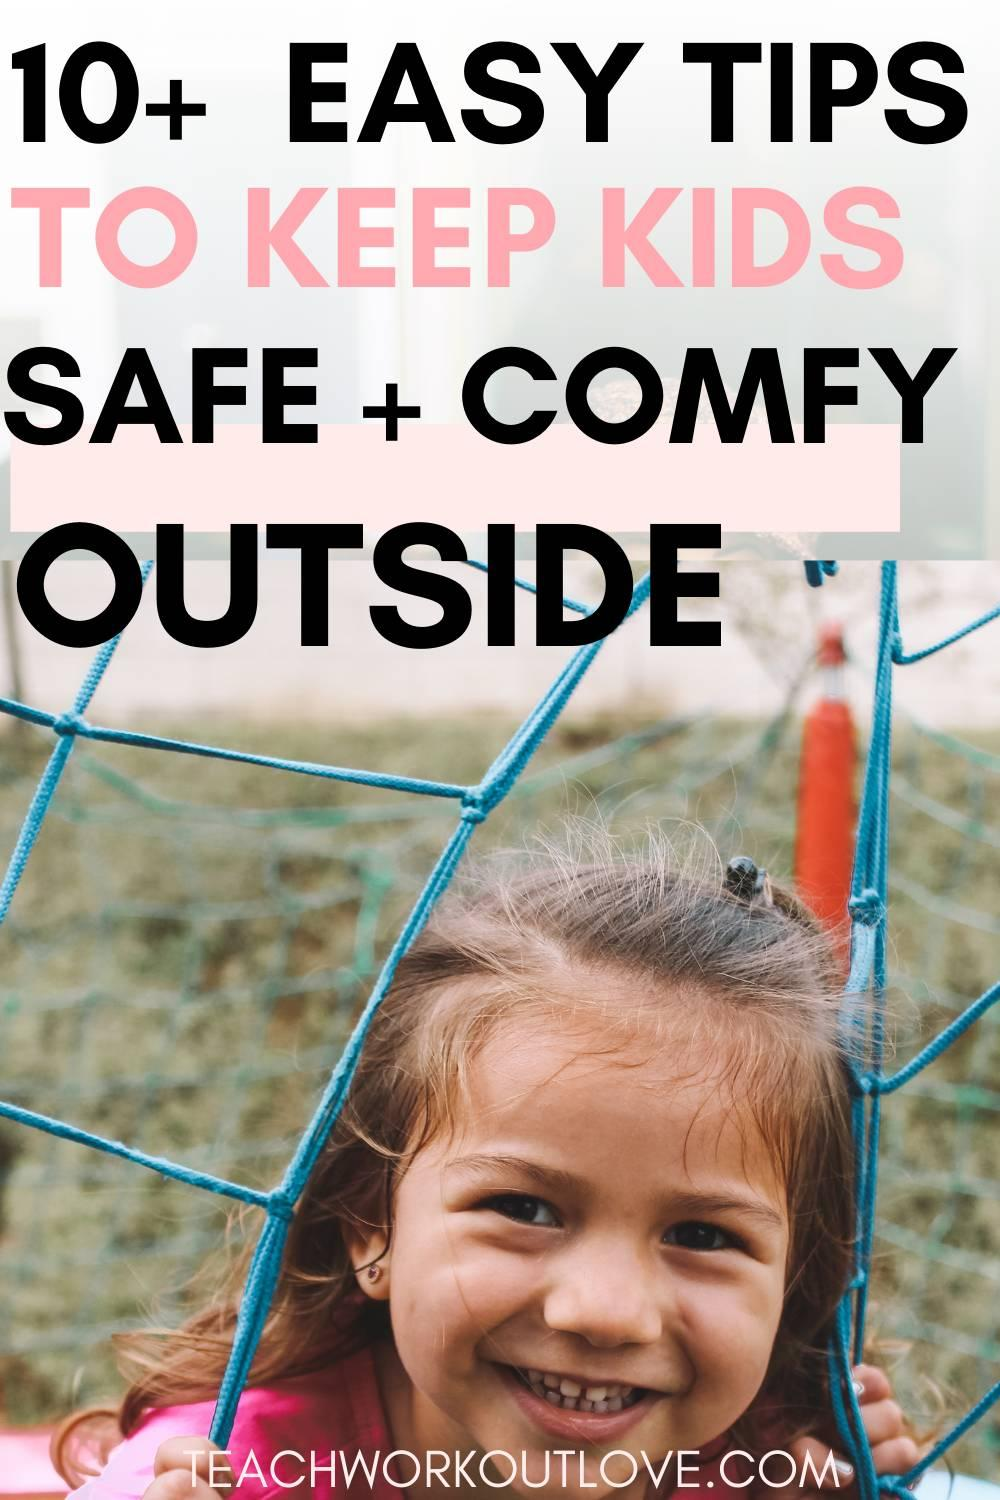 Summer is coming and parents need to keep their kids safe outside. We take a look on the easiest and effective tips to do that. Read on.